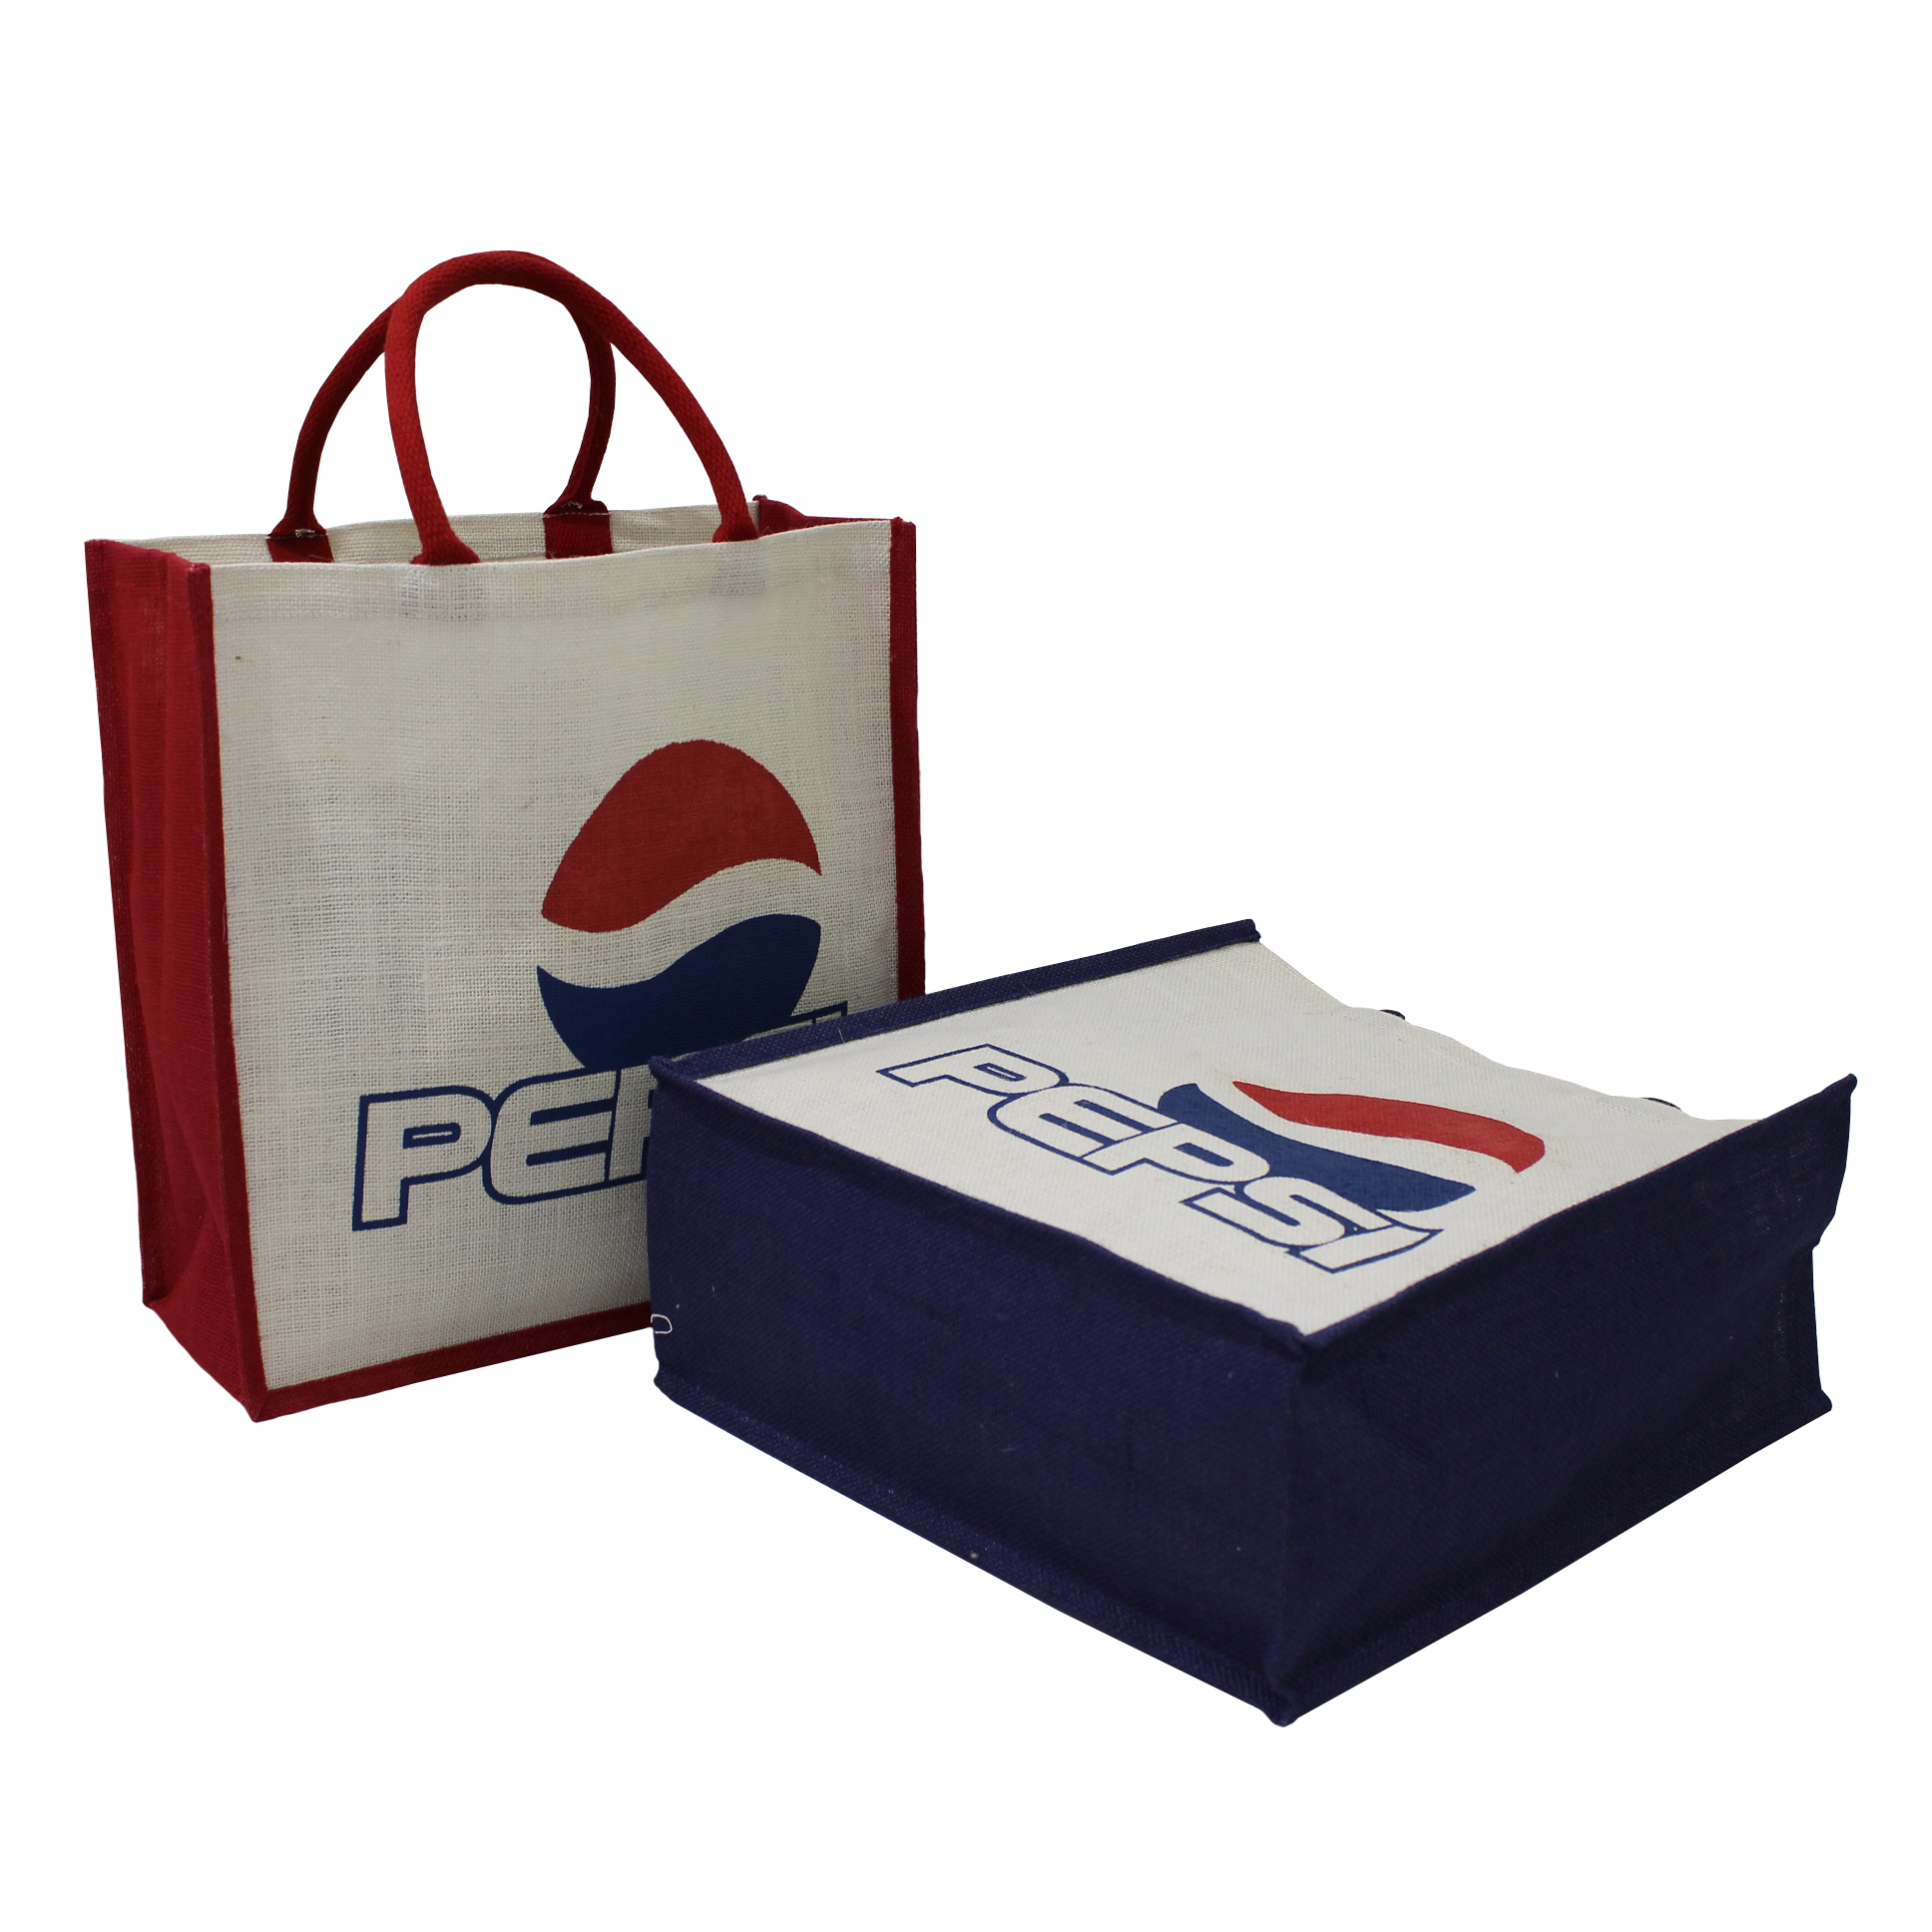 PP Laminated Jute Fabric Tote Bag With Two Color Logo Print Two Side